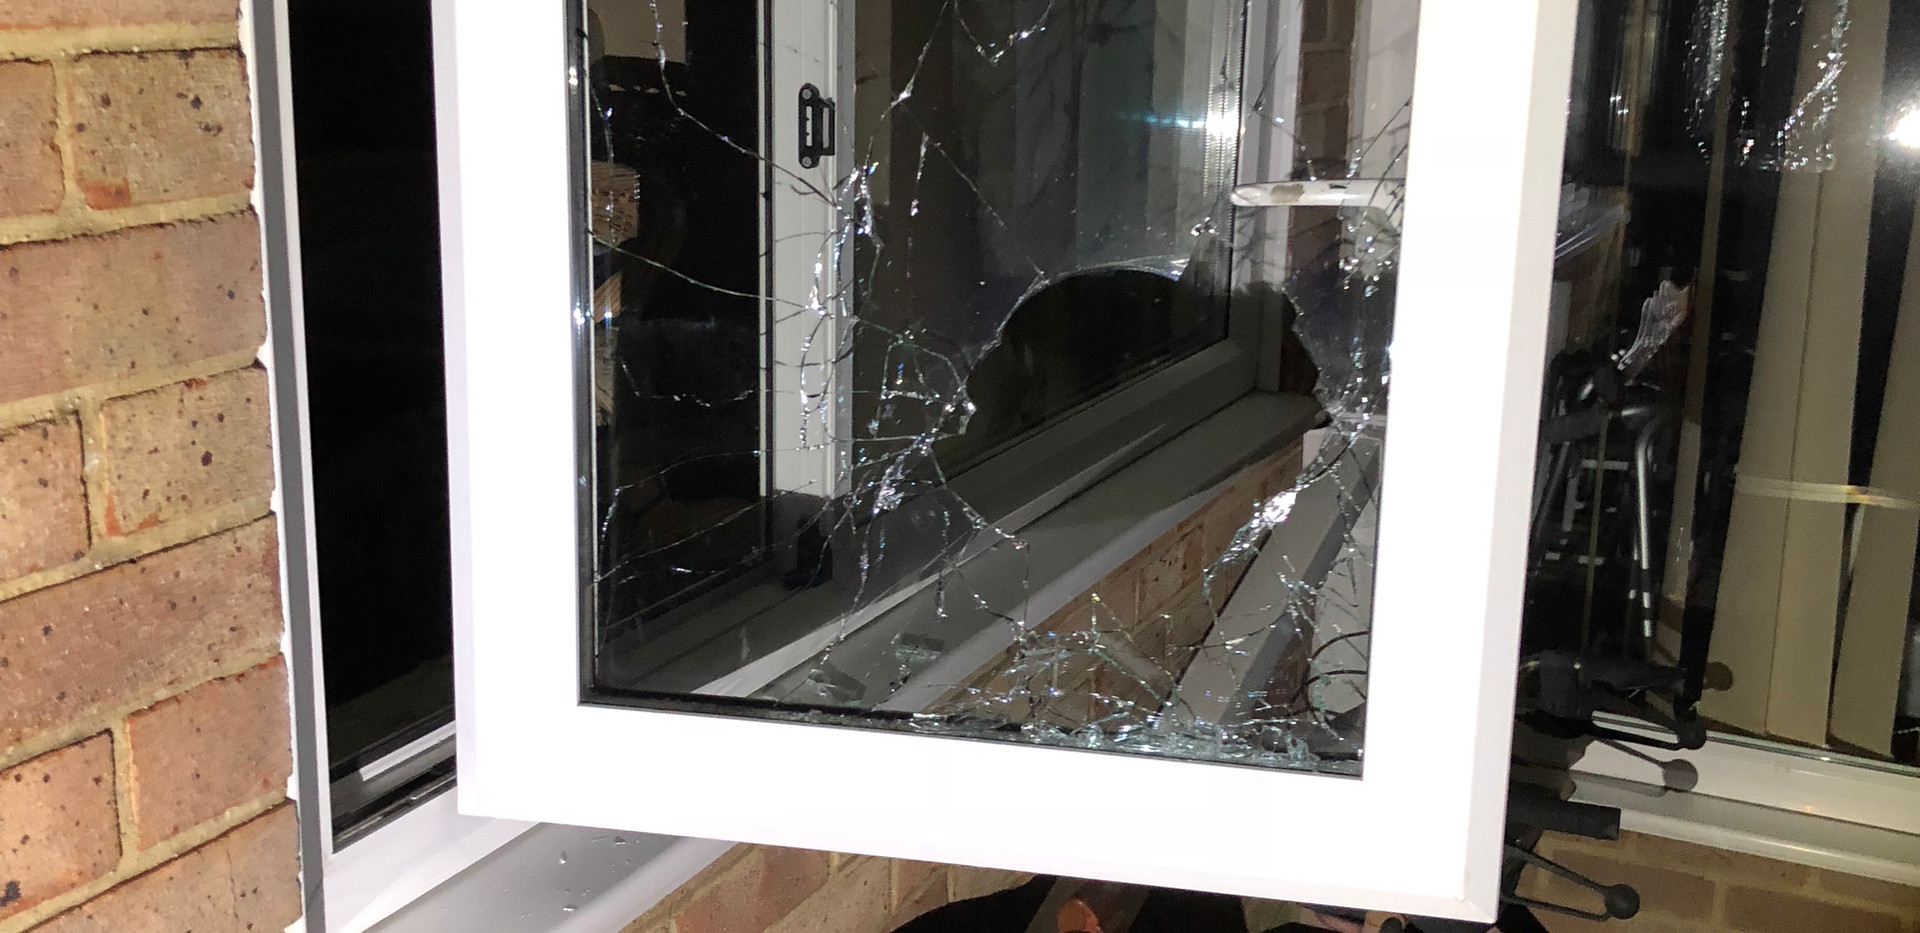 forced entry through window